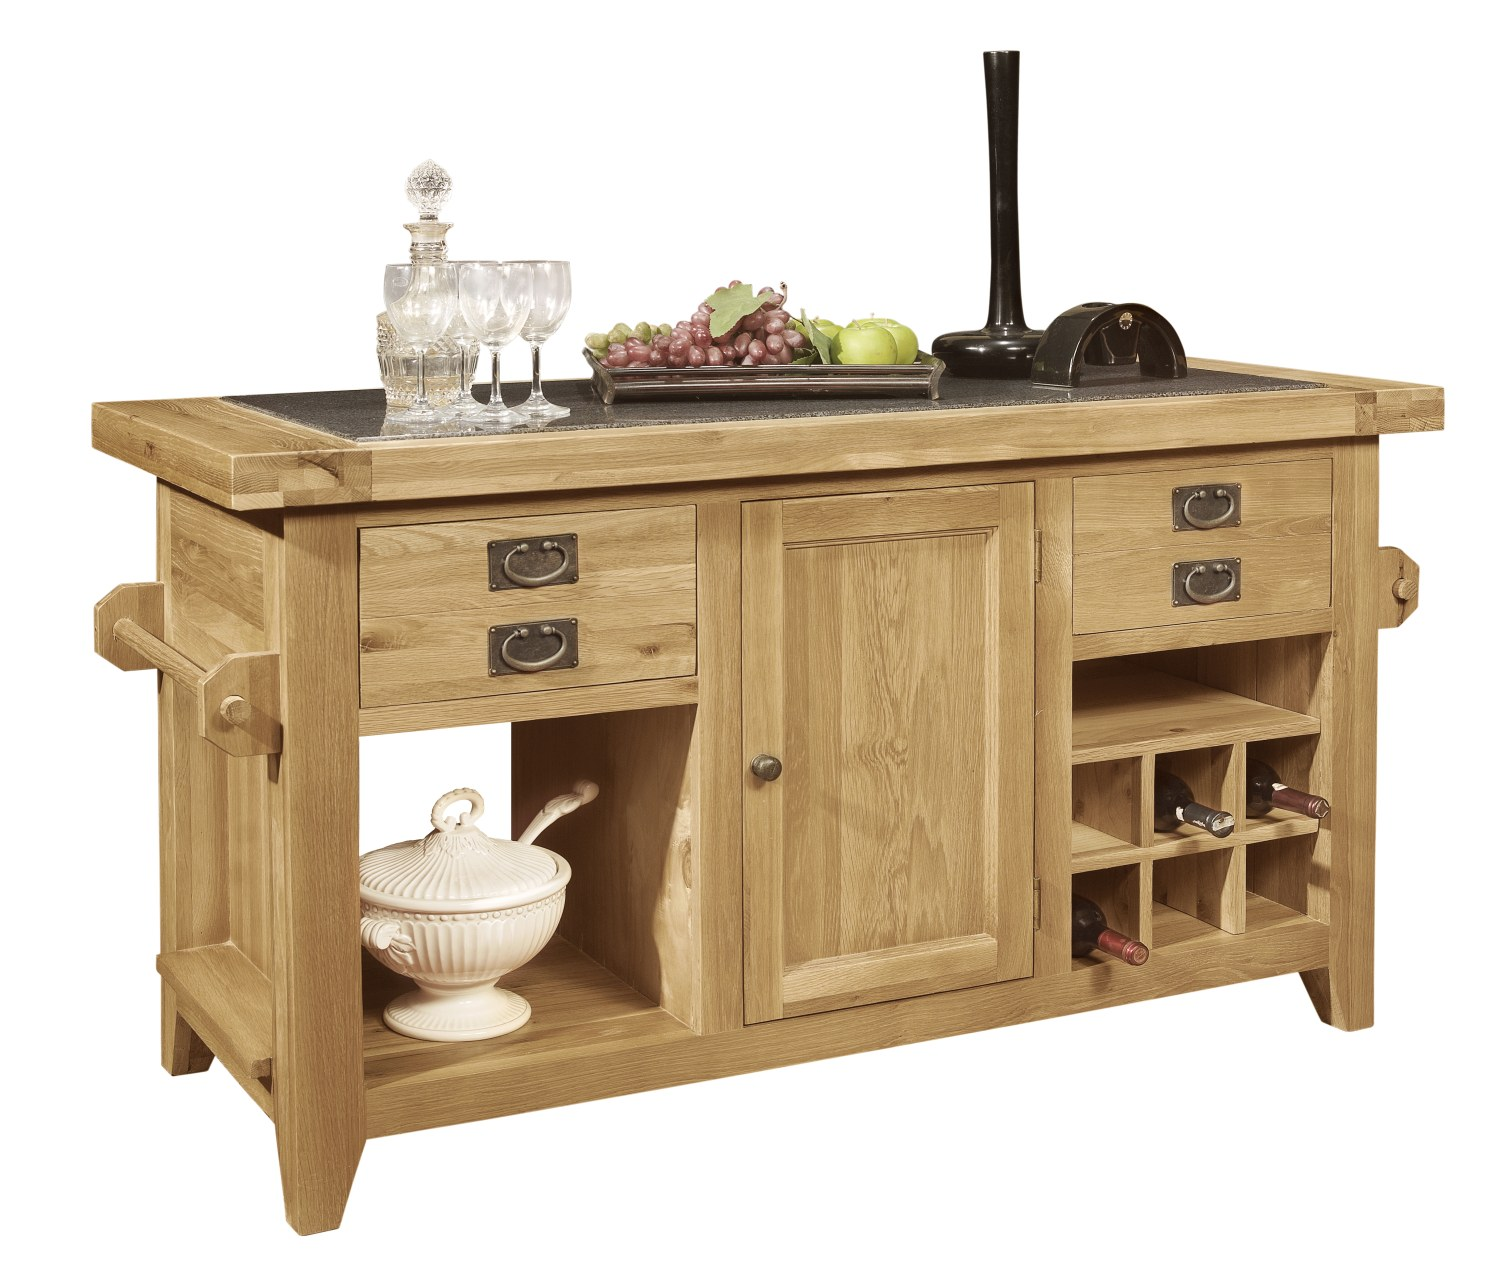 Kitchen Island Furniture: Panama Solid Oak Furniture Large Granite Top Kitchen